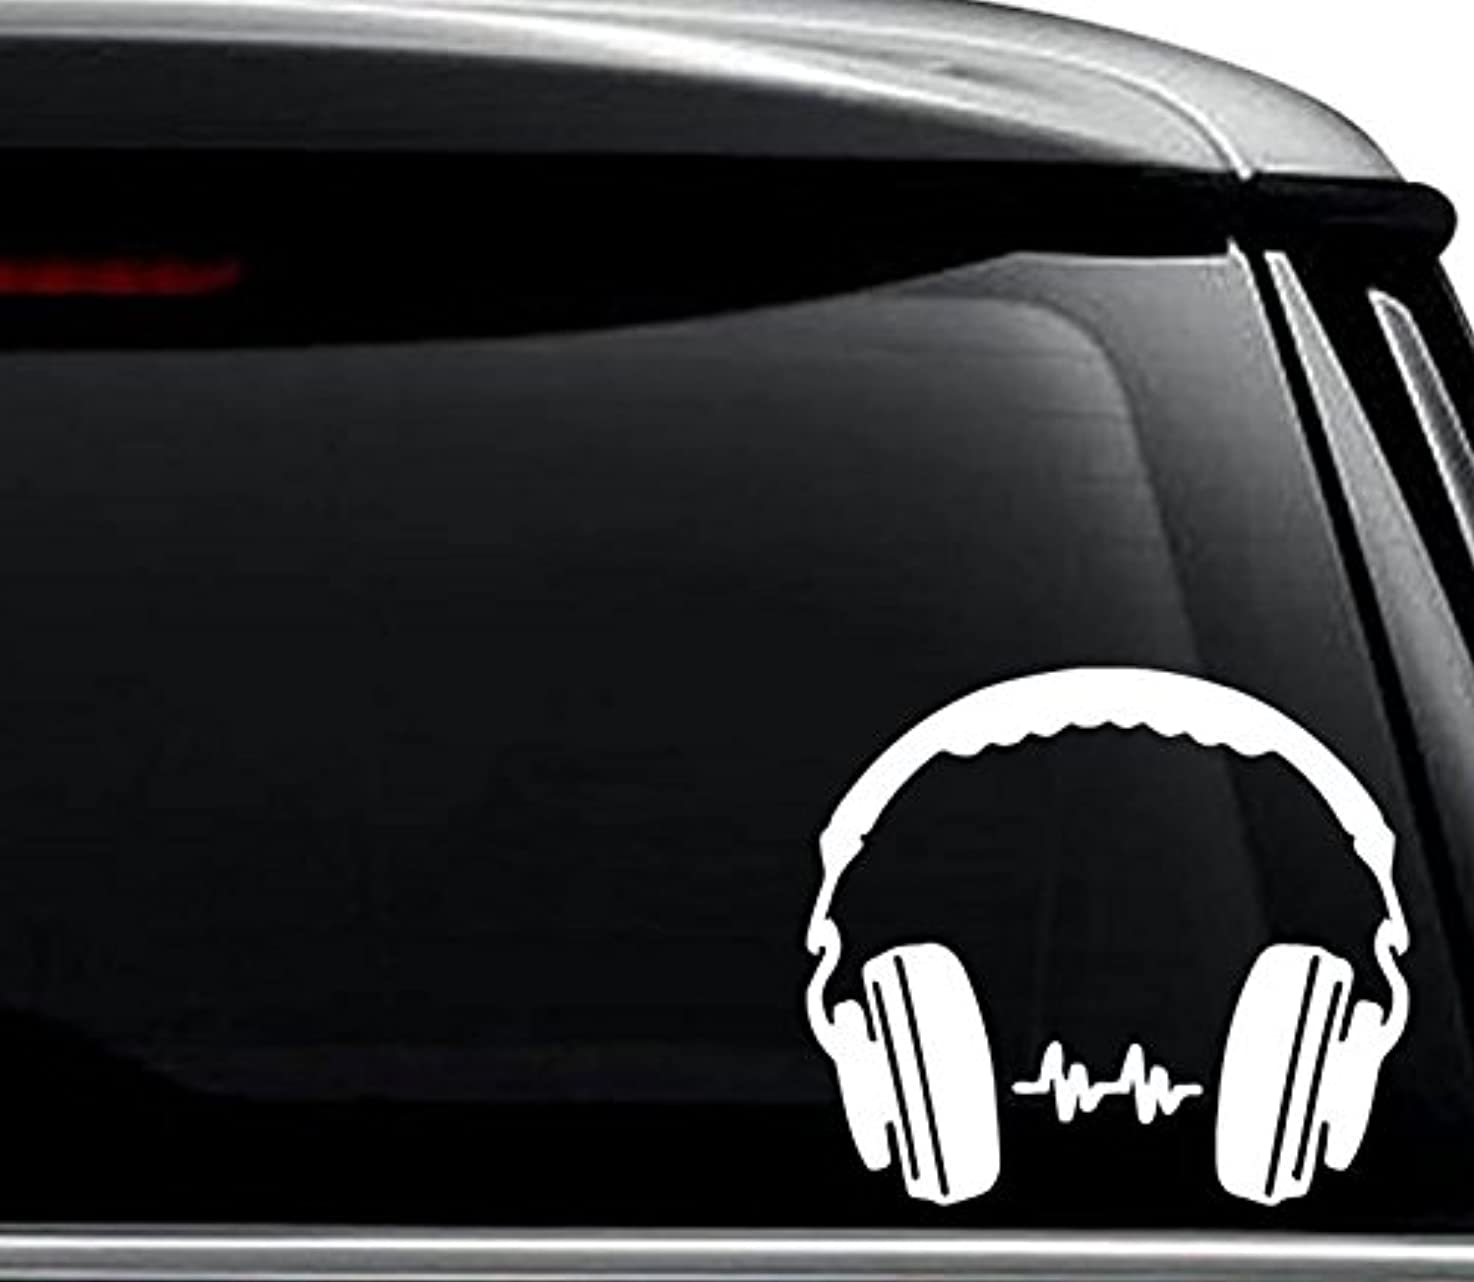 DJ Headphones Music Decal Sticker For Use On Laptop, Helmet, Car, Truck, Motorcycle, Windows, Bumper, Wall, and Decor Size- [12 inch] / [30 cm] Wide / Color- Gloss White